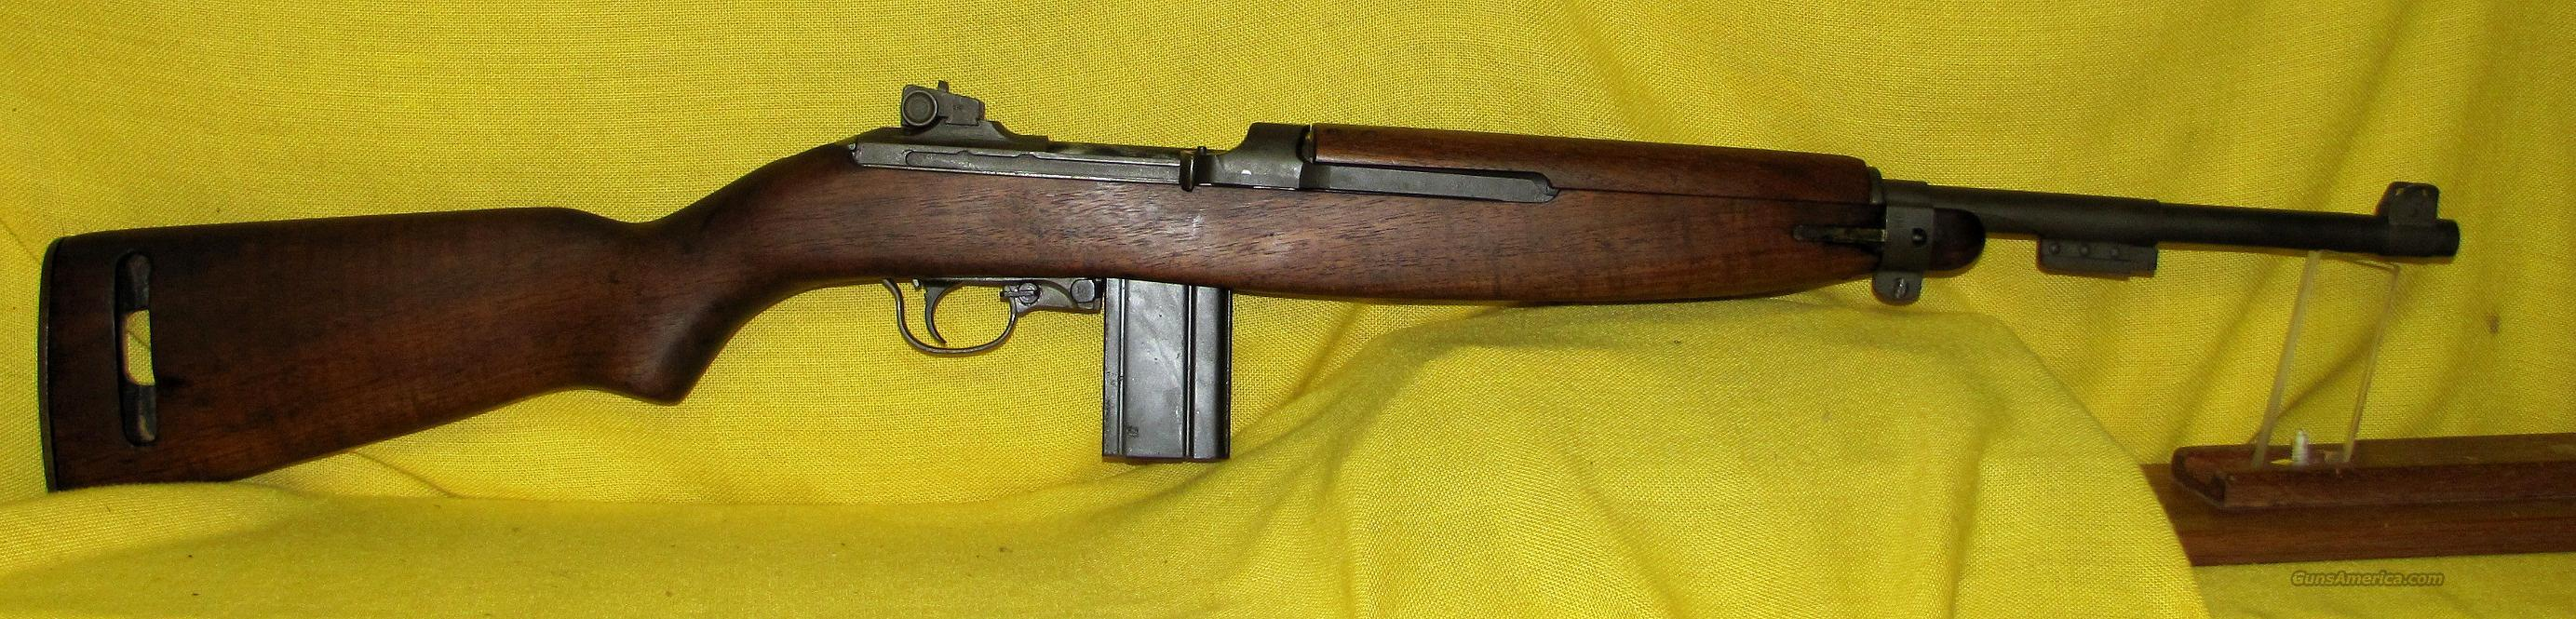 M1 CARBINE QUALITY HARDWARE .30CAL  Guns > Rifles > Military Misc. Rifles US > M1 Carbine